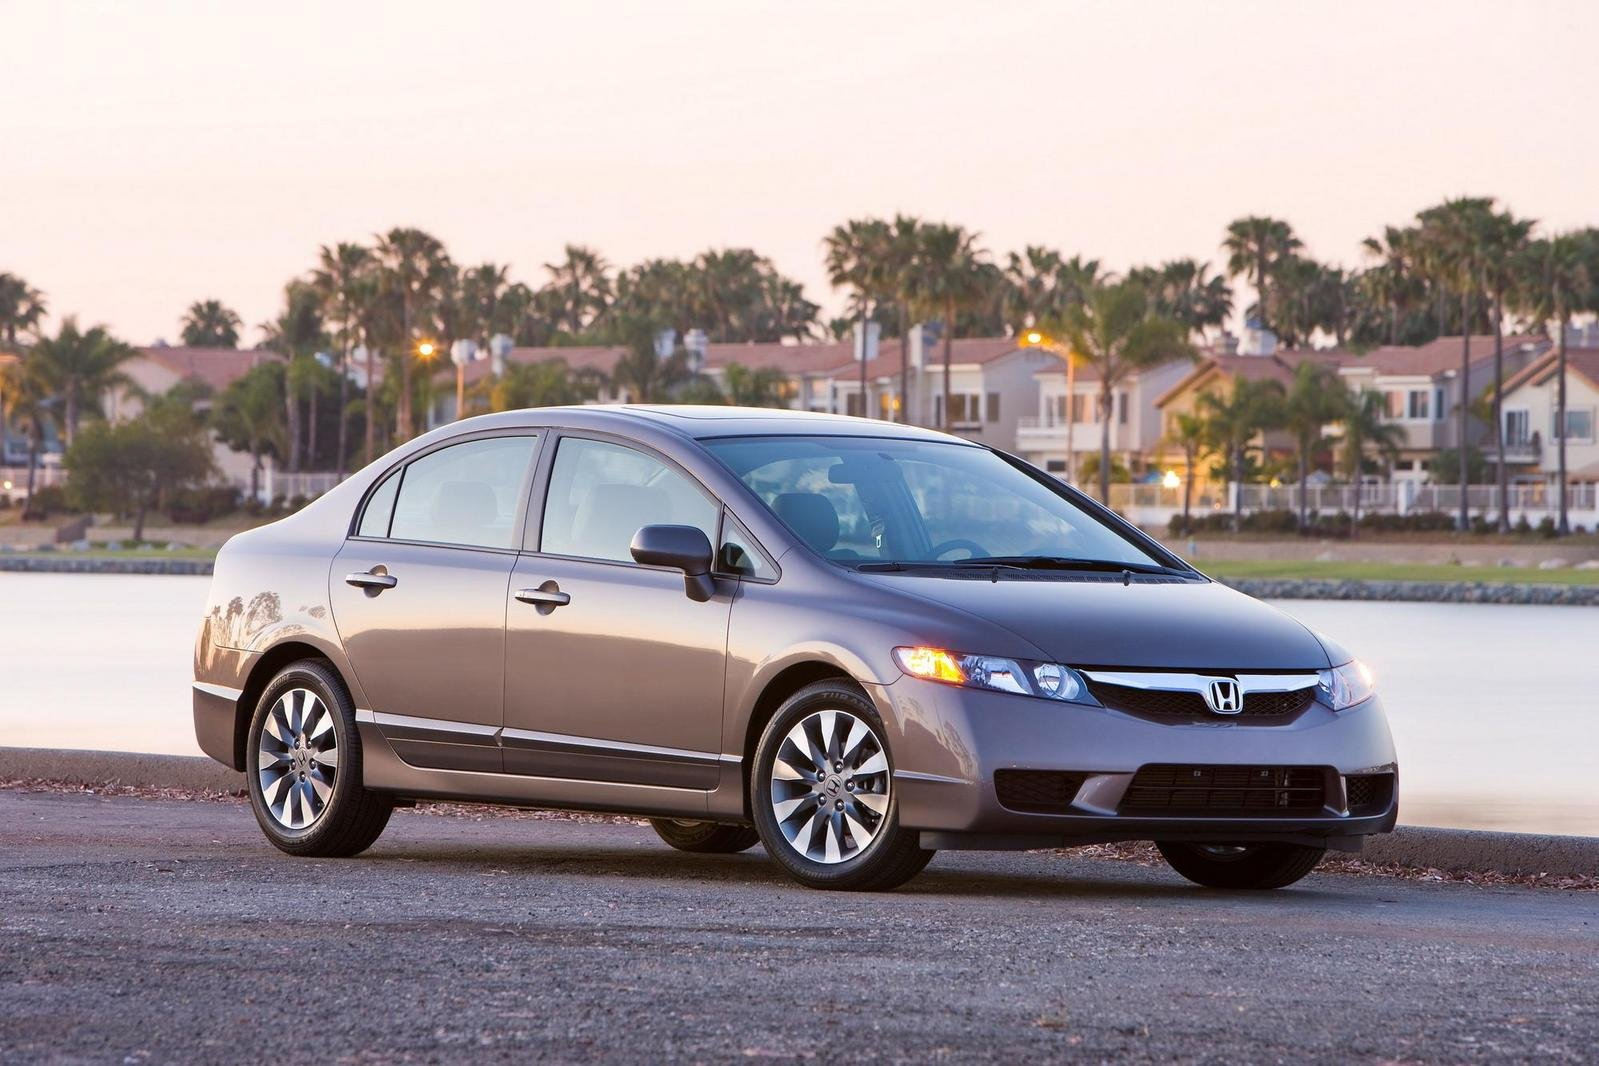 2010 honda civic picture 348918 car review top speed. Black Bedroom Furniture Sets. Home Design Ideas